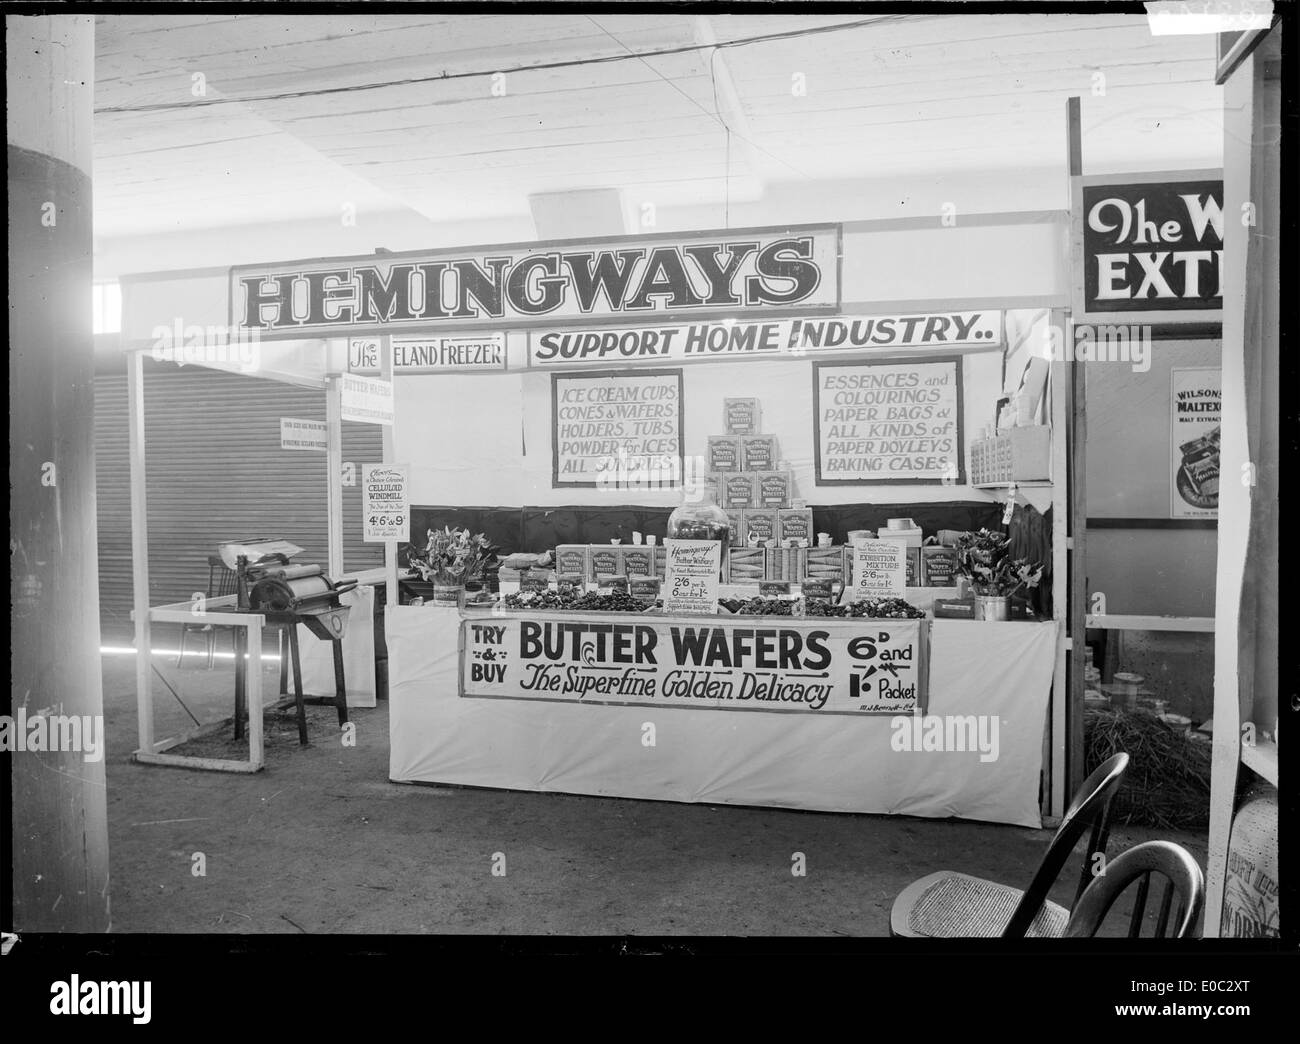 Stall at a trade fair advertising and displaying the produce of J L N Hemingway, including butter wafers and other items associated with ice creams, 1930 - Stock Image